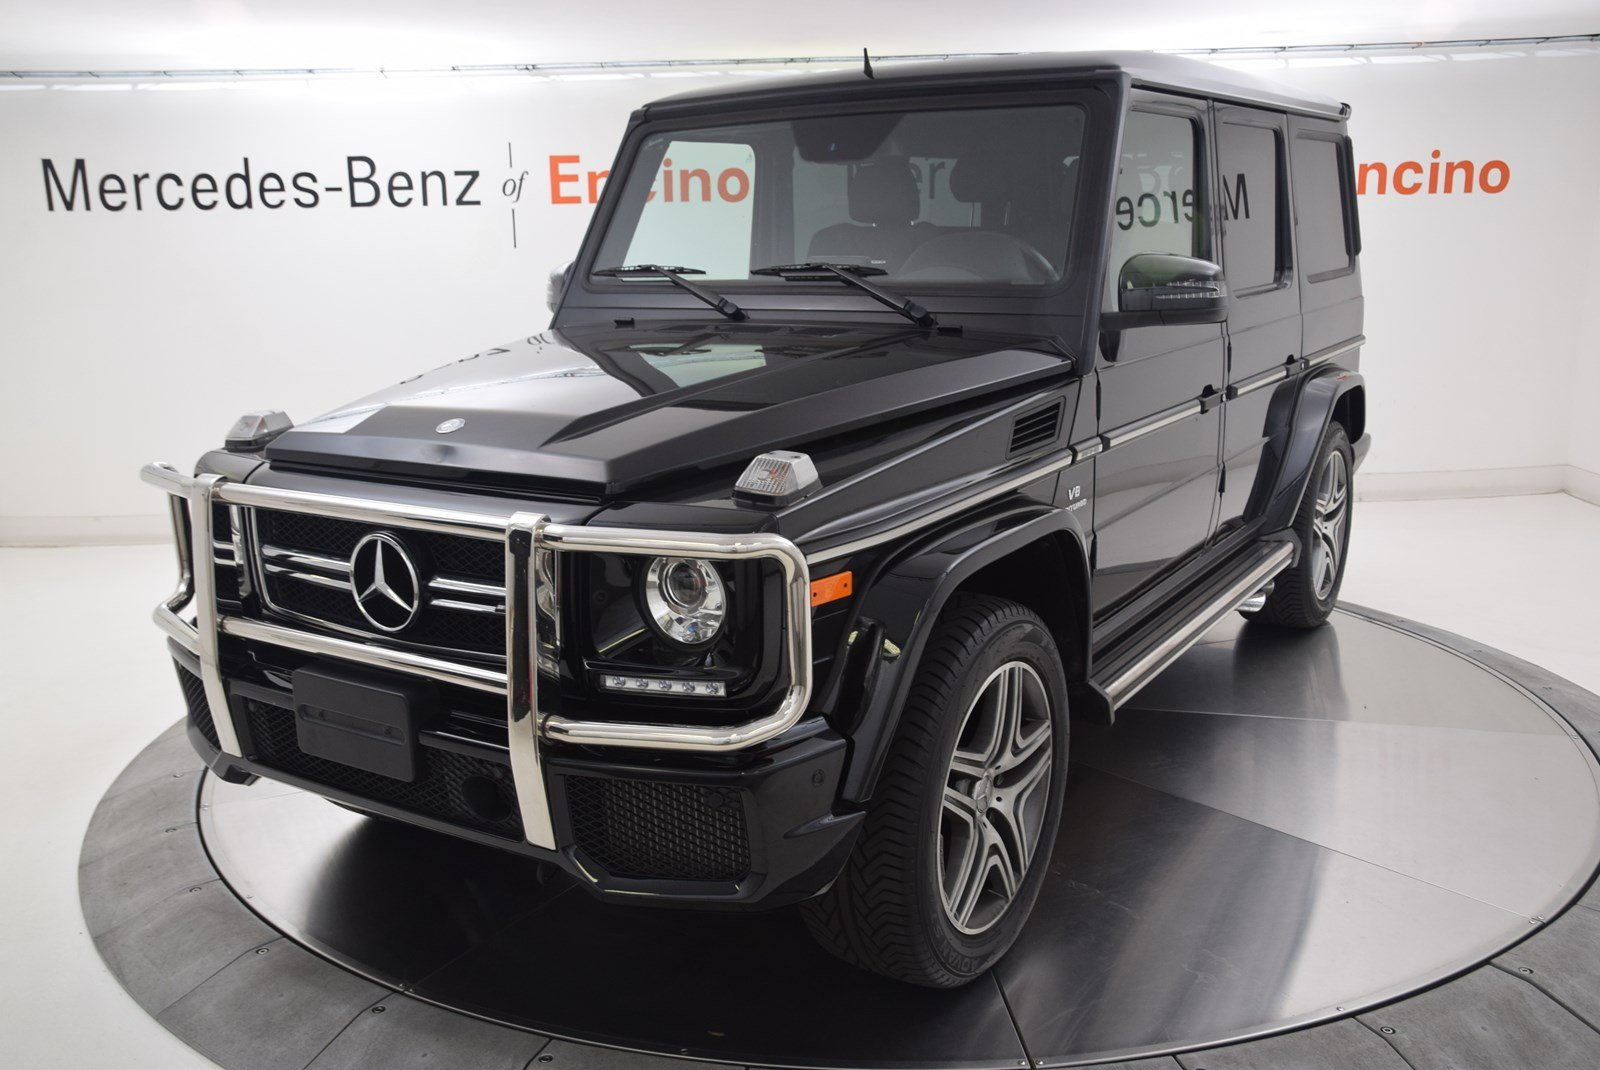 pre owned 2016 mercedes benz g class amg g 63 suv suv in encino 68666t mercedes benz of encino. Black Bedroom Furniture Sets. Home Design Ideas